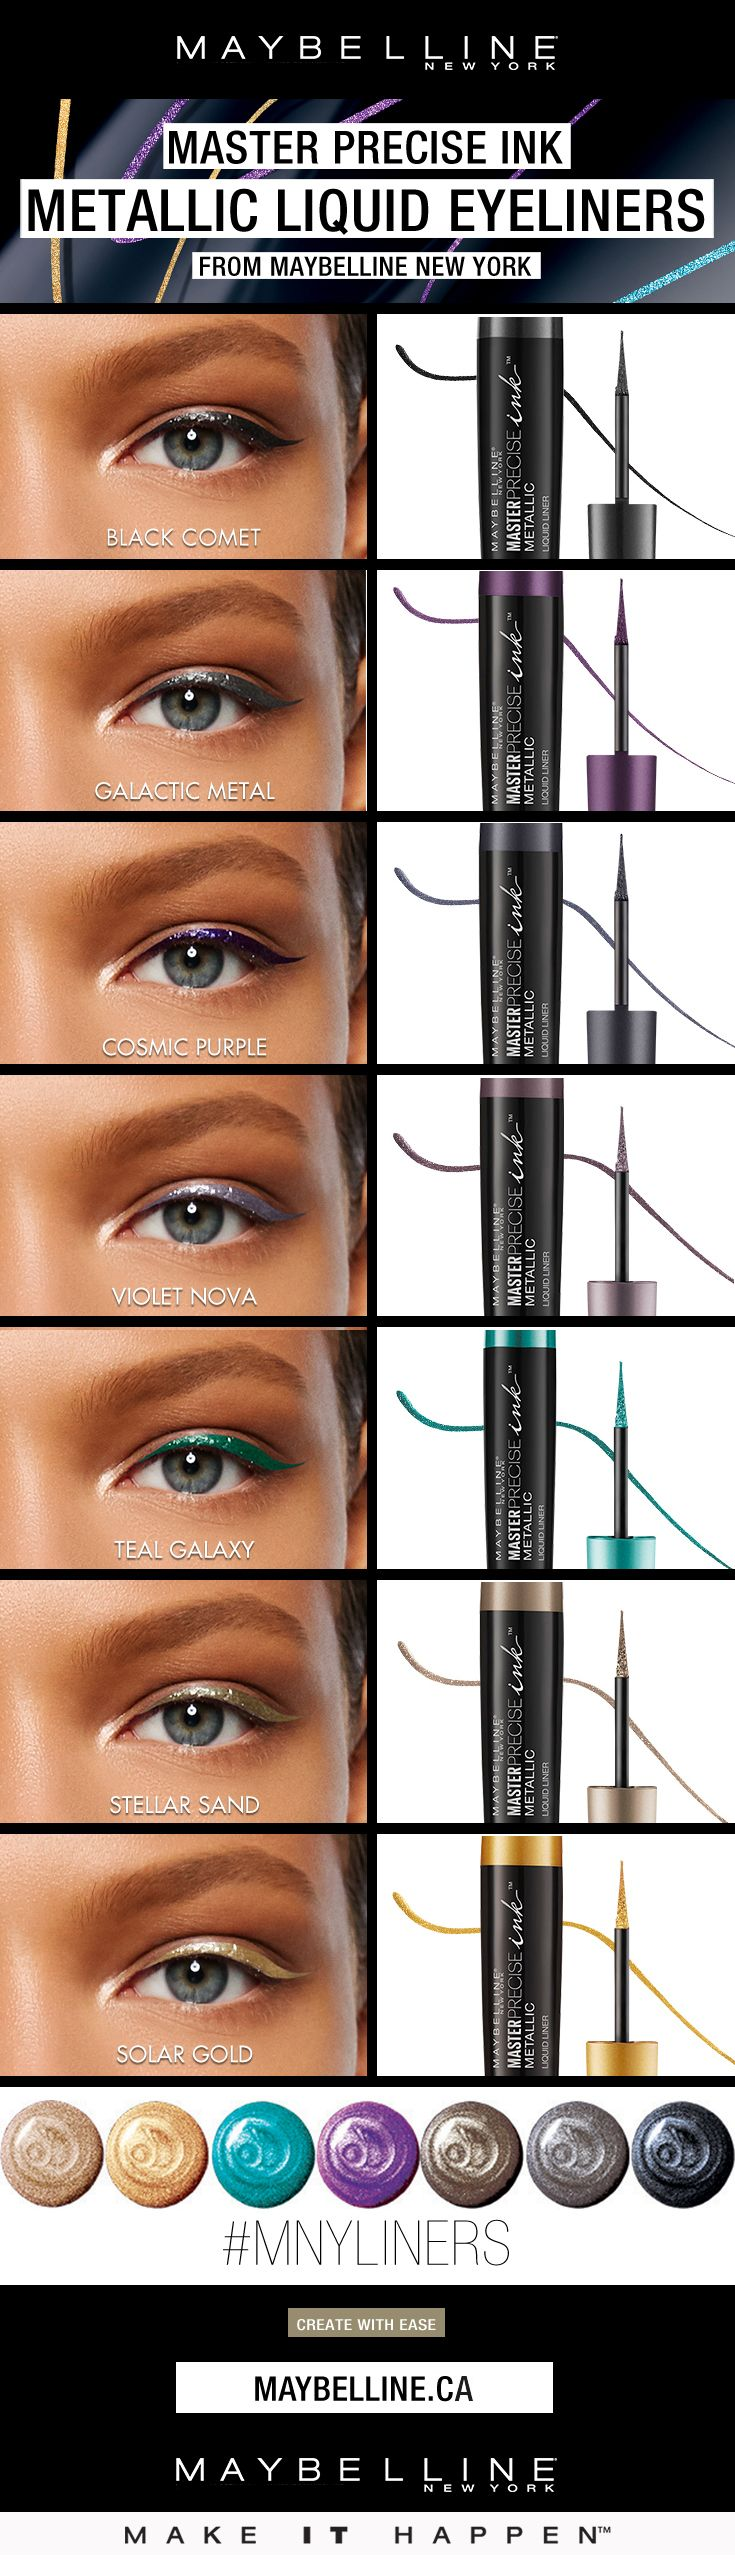 From Solar Gold and Cosmic Purple to Black Comet and Galactic Metal, ink your eyes in high-impact color with up to 24-hour metallic intensity. This metallic liquid eyeliner is smudge-proof and waterproof. Ophthalmologist tested. Dermatologist tested. Fragrance free. Suitable for sensitive eyes and contact lens wearers.